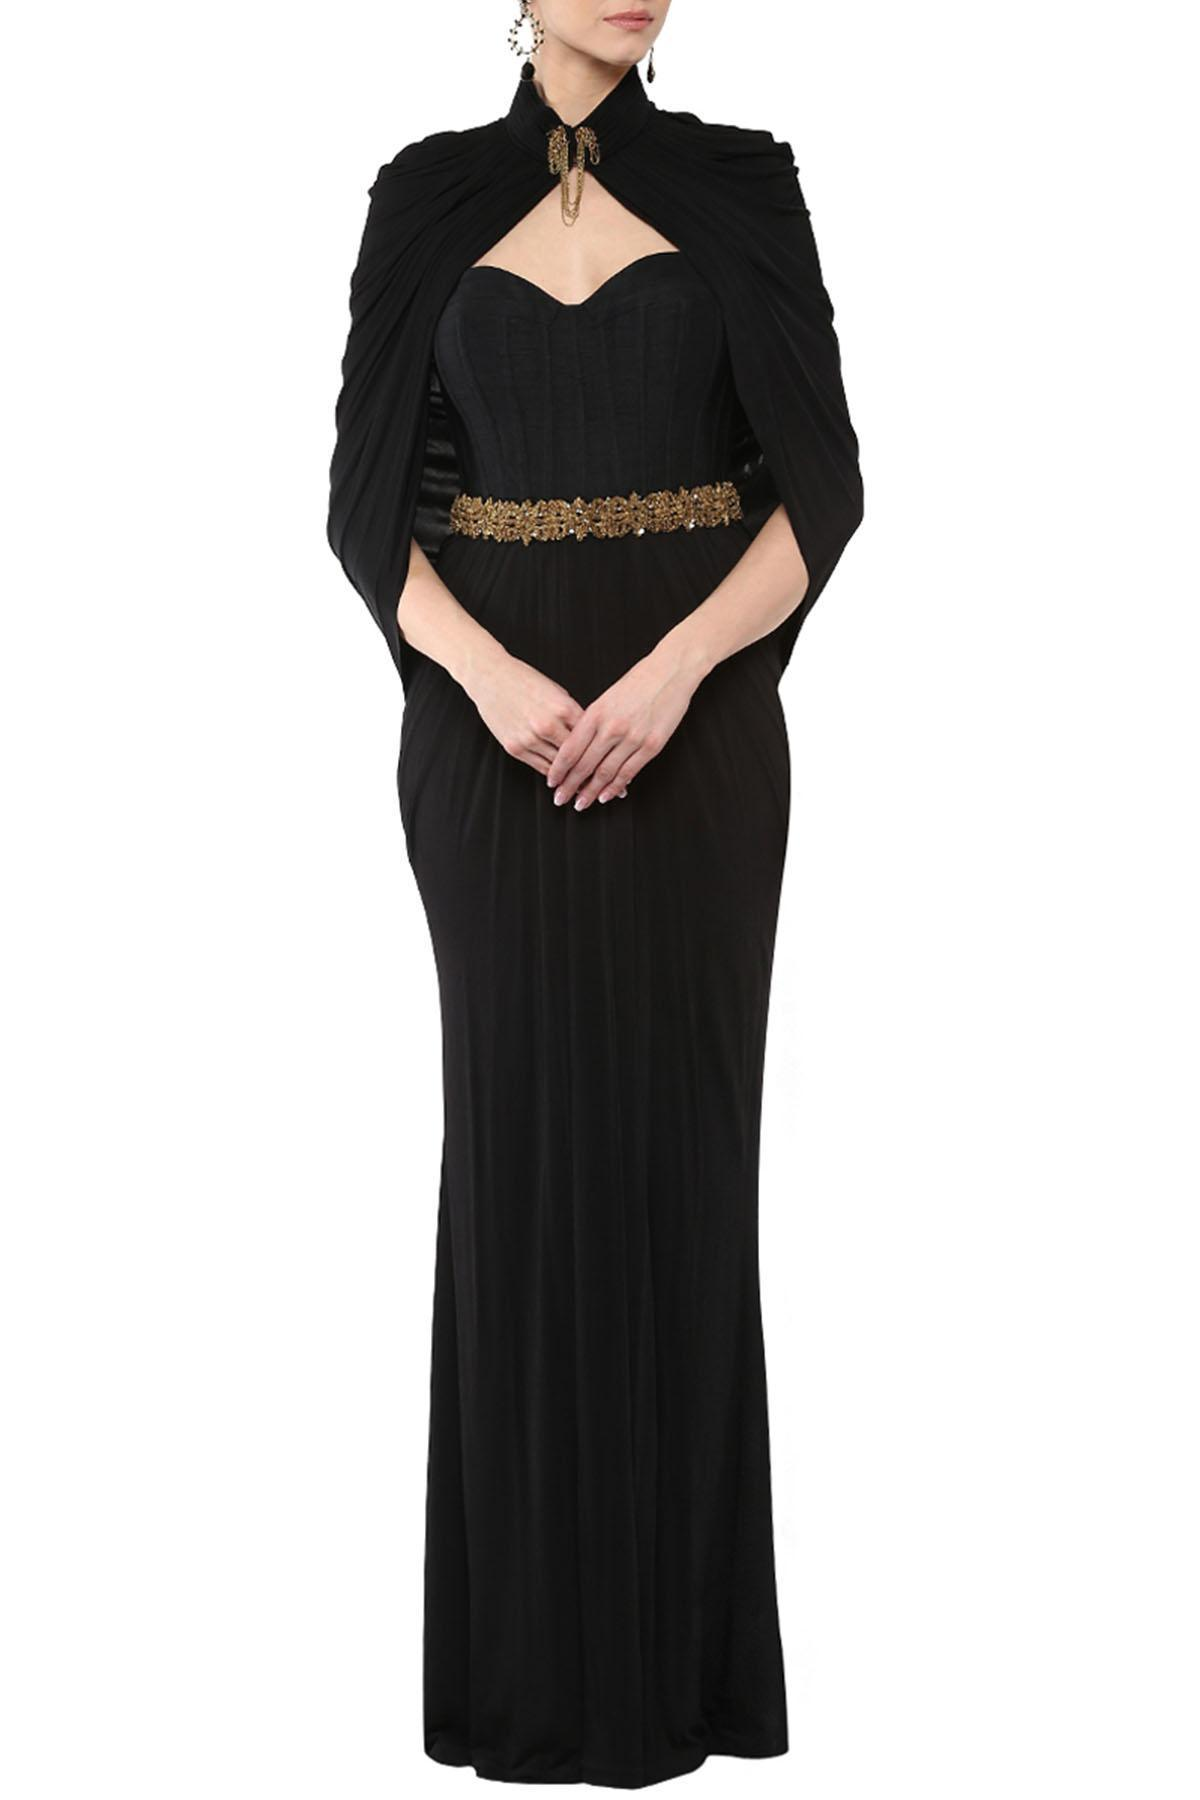 269321331f03 Chick Black Corset Cape Gown by Shantanu And Nikhil for rent online ...